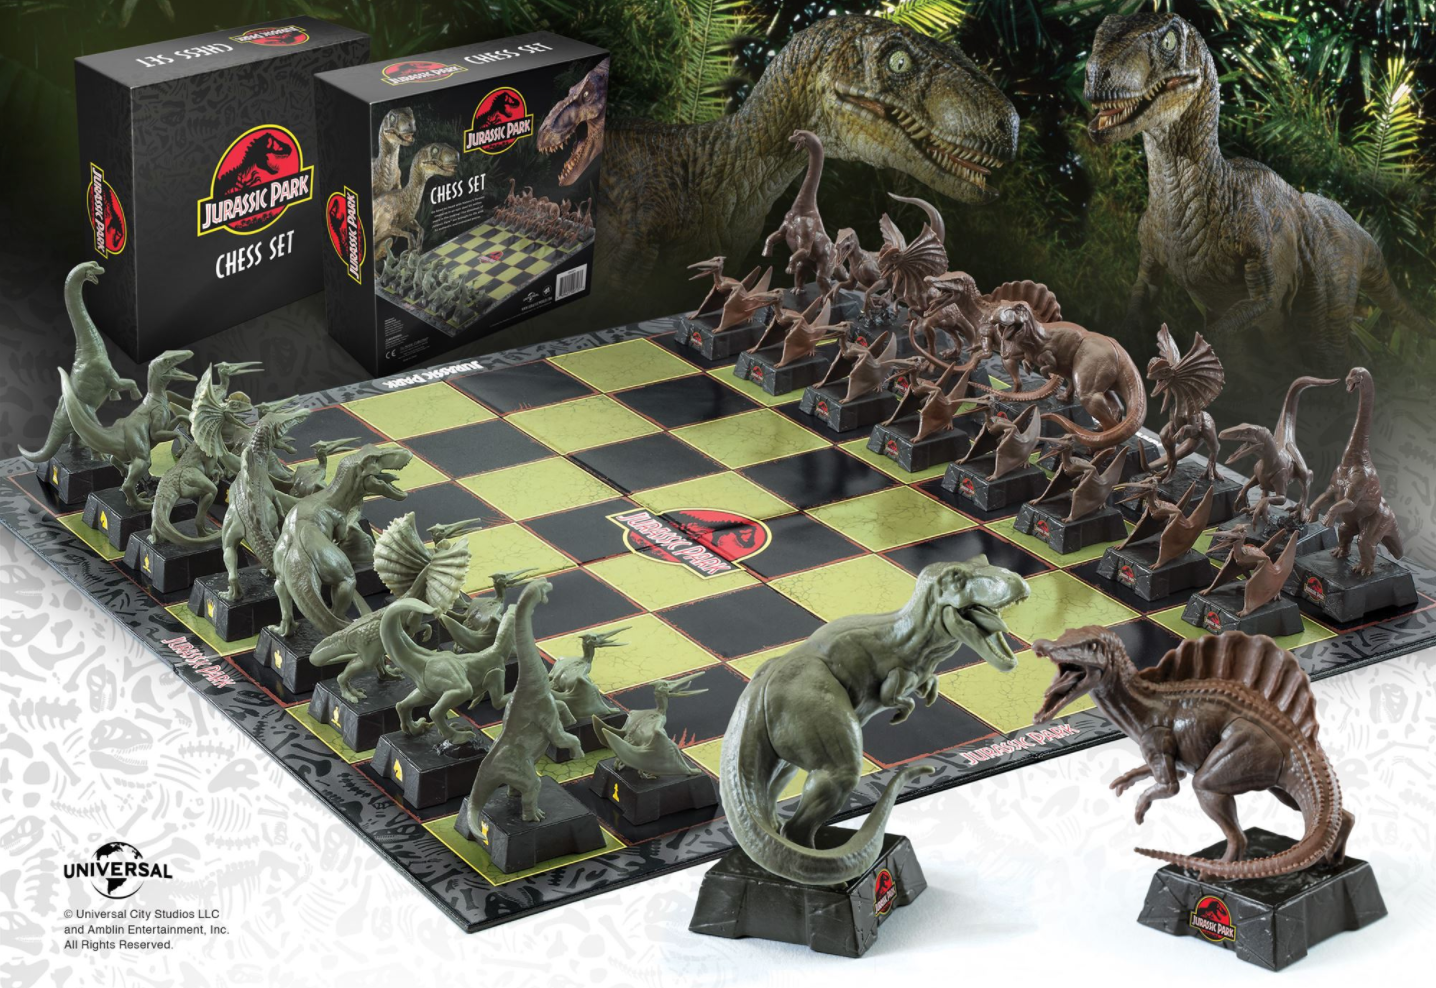 Jurassic Park Chess Set